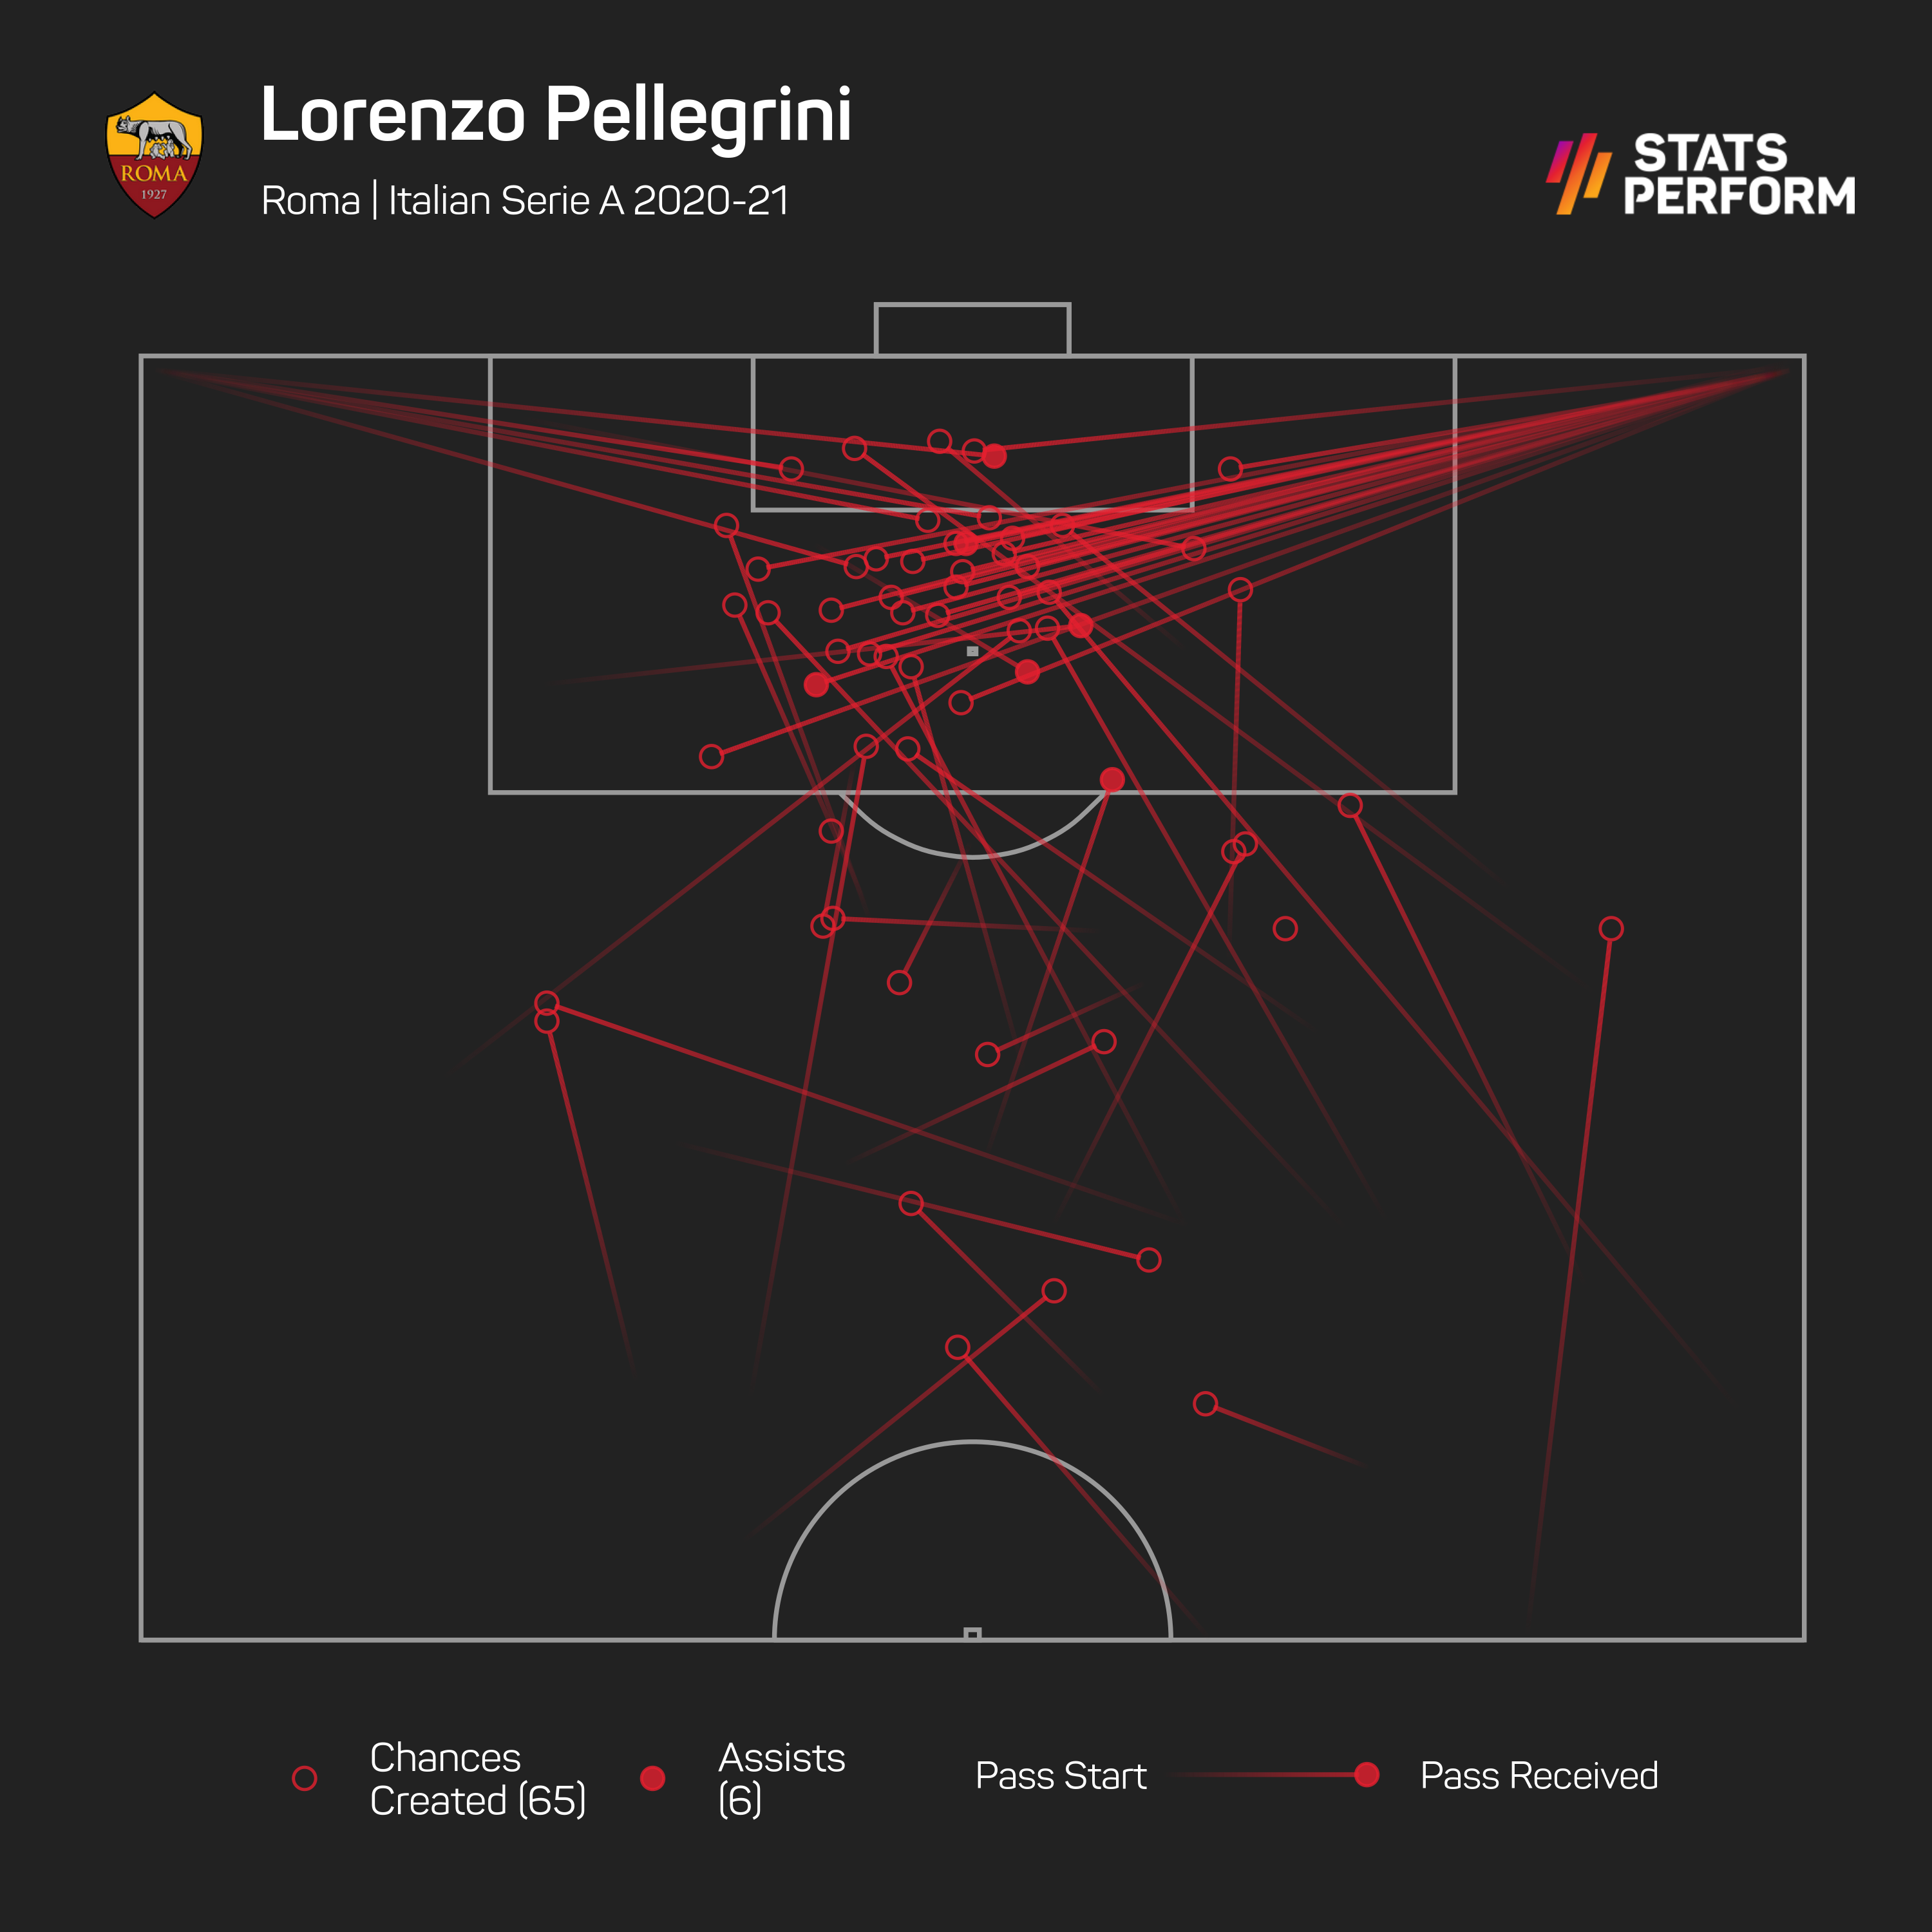 Pellegrini was a regular source of key passes for Roma